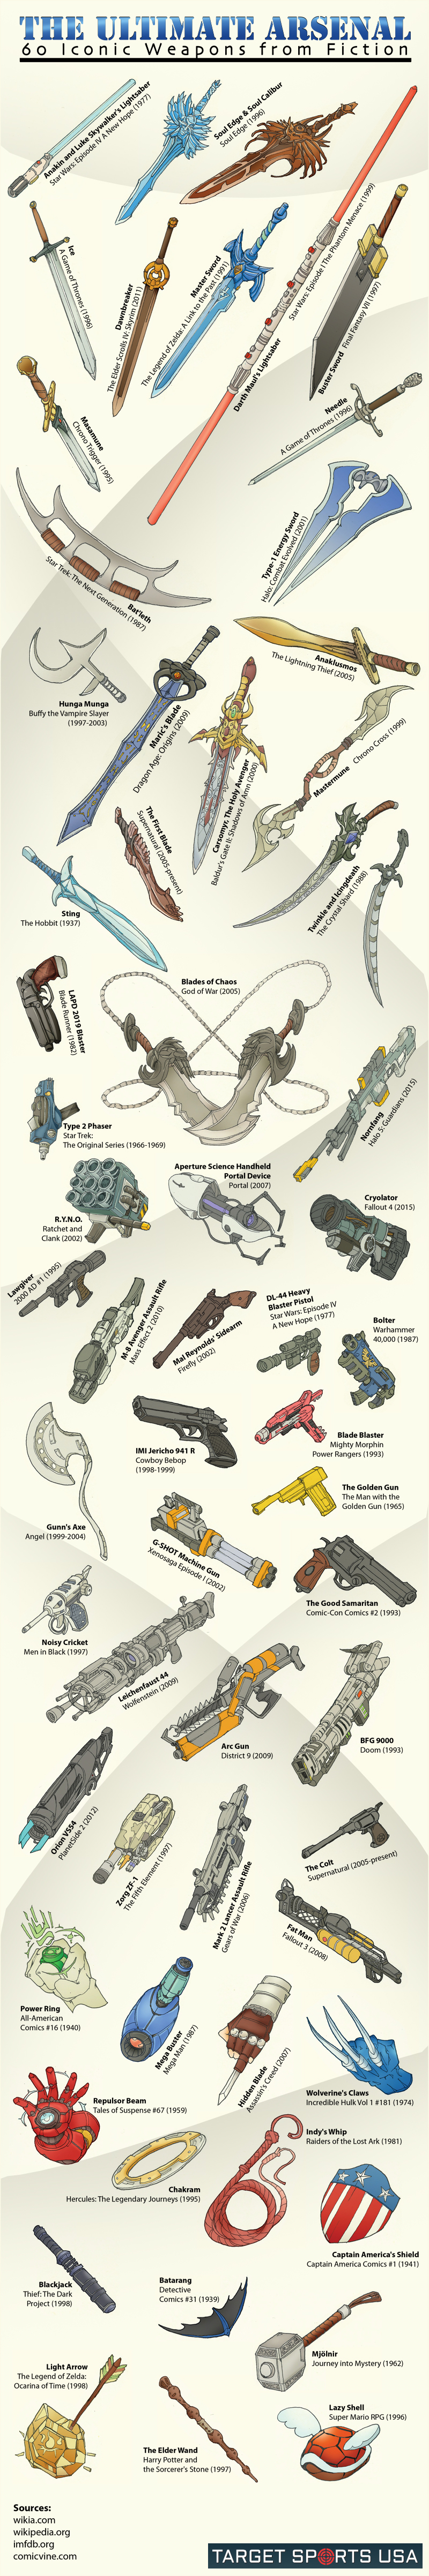 The Ultimate Arsenal: 60 Iconic Weapons from Fiction - TargetSportsUSA.com - Infographic